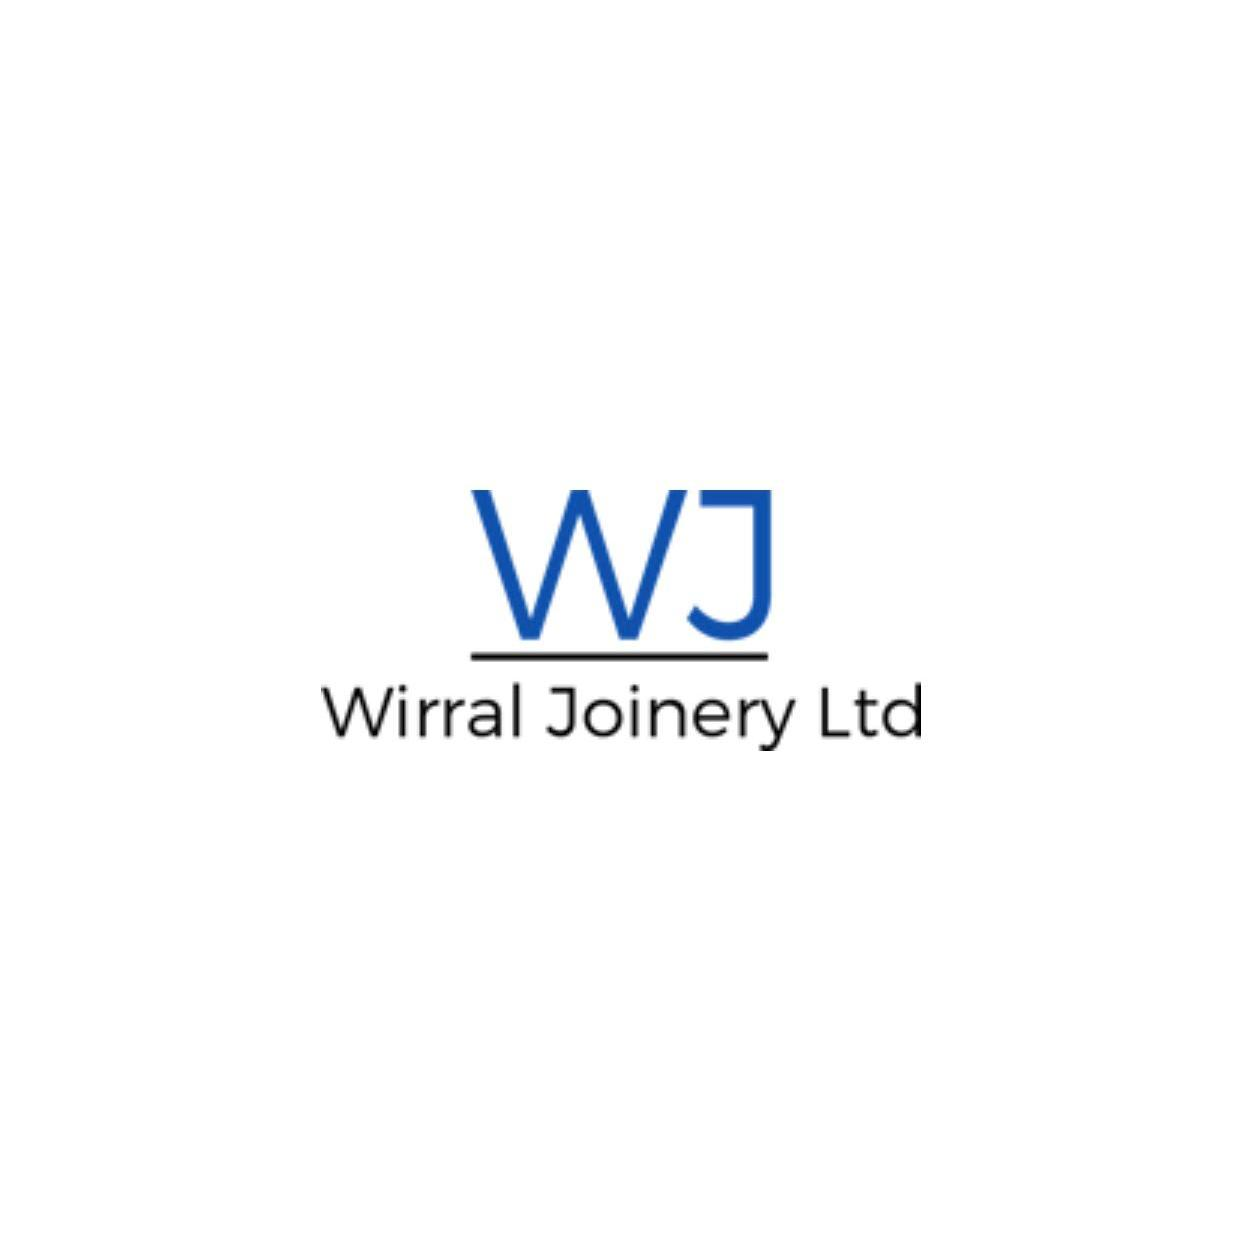 Wirral Joinery Ltd - Prenton, Merseyside CH43 0SA - 07703 110328 | ShowMeLocal.com